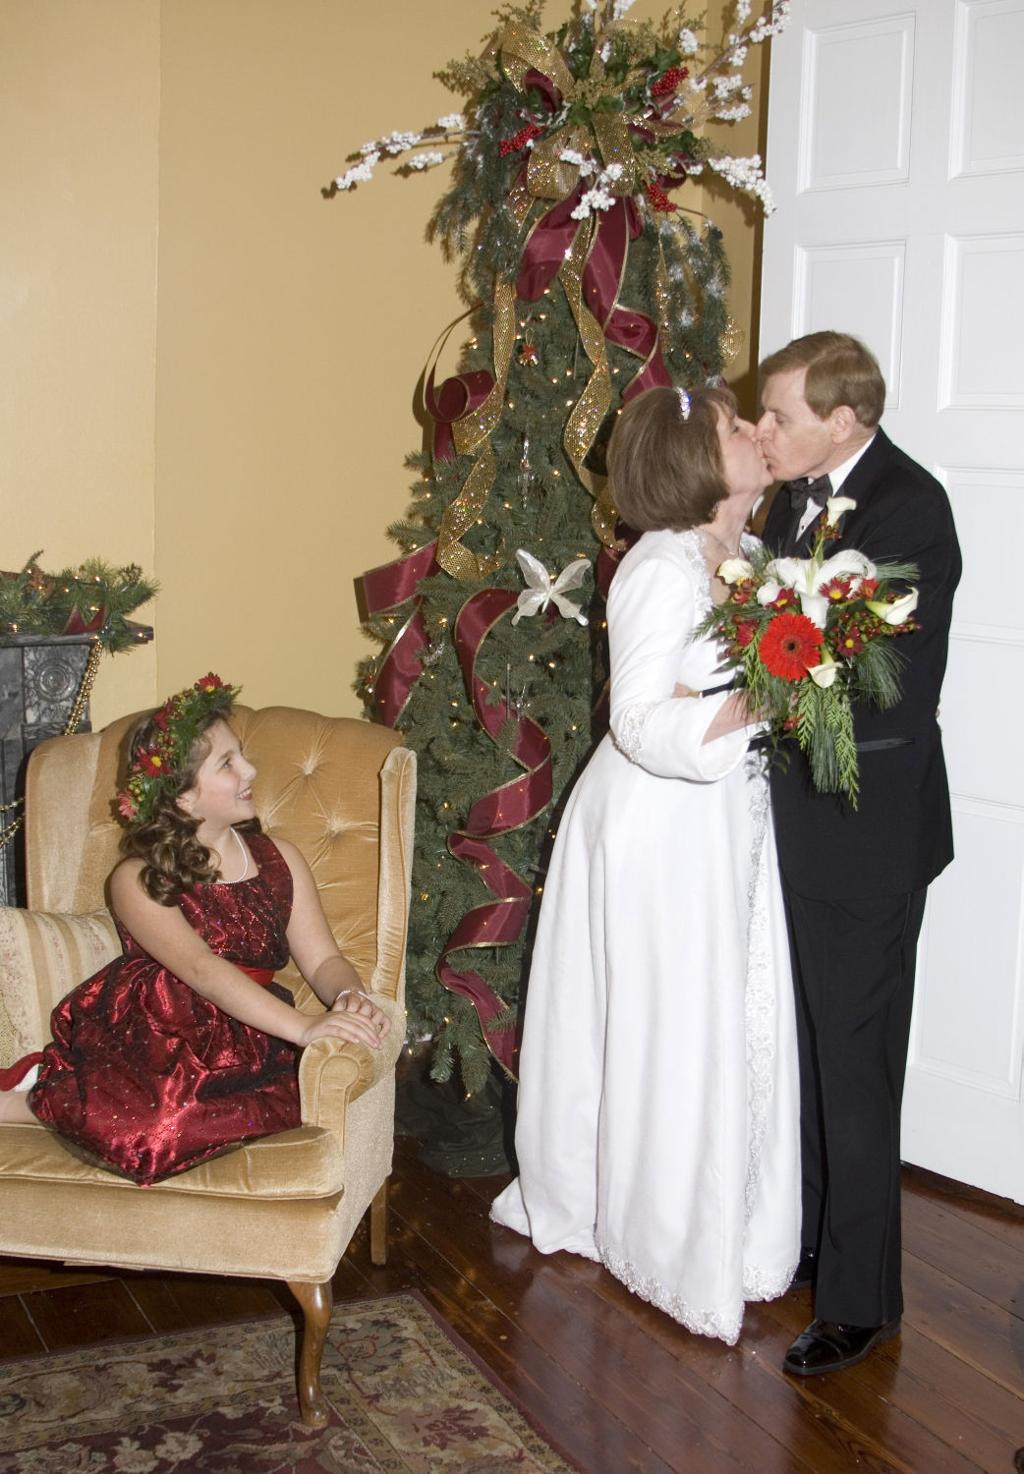 Have yourself a merry little ... wedding | | pantagraph.com